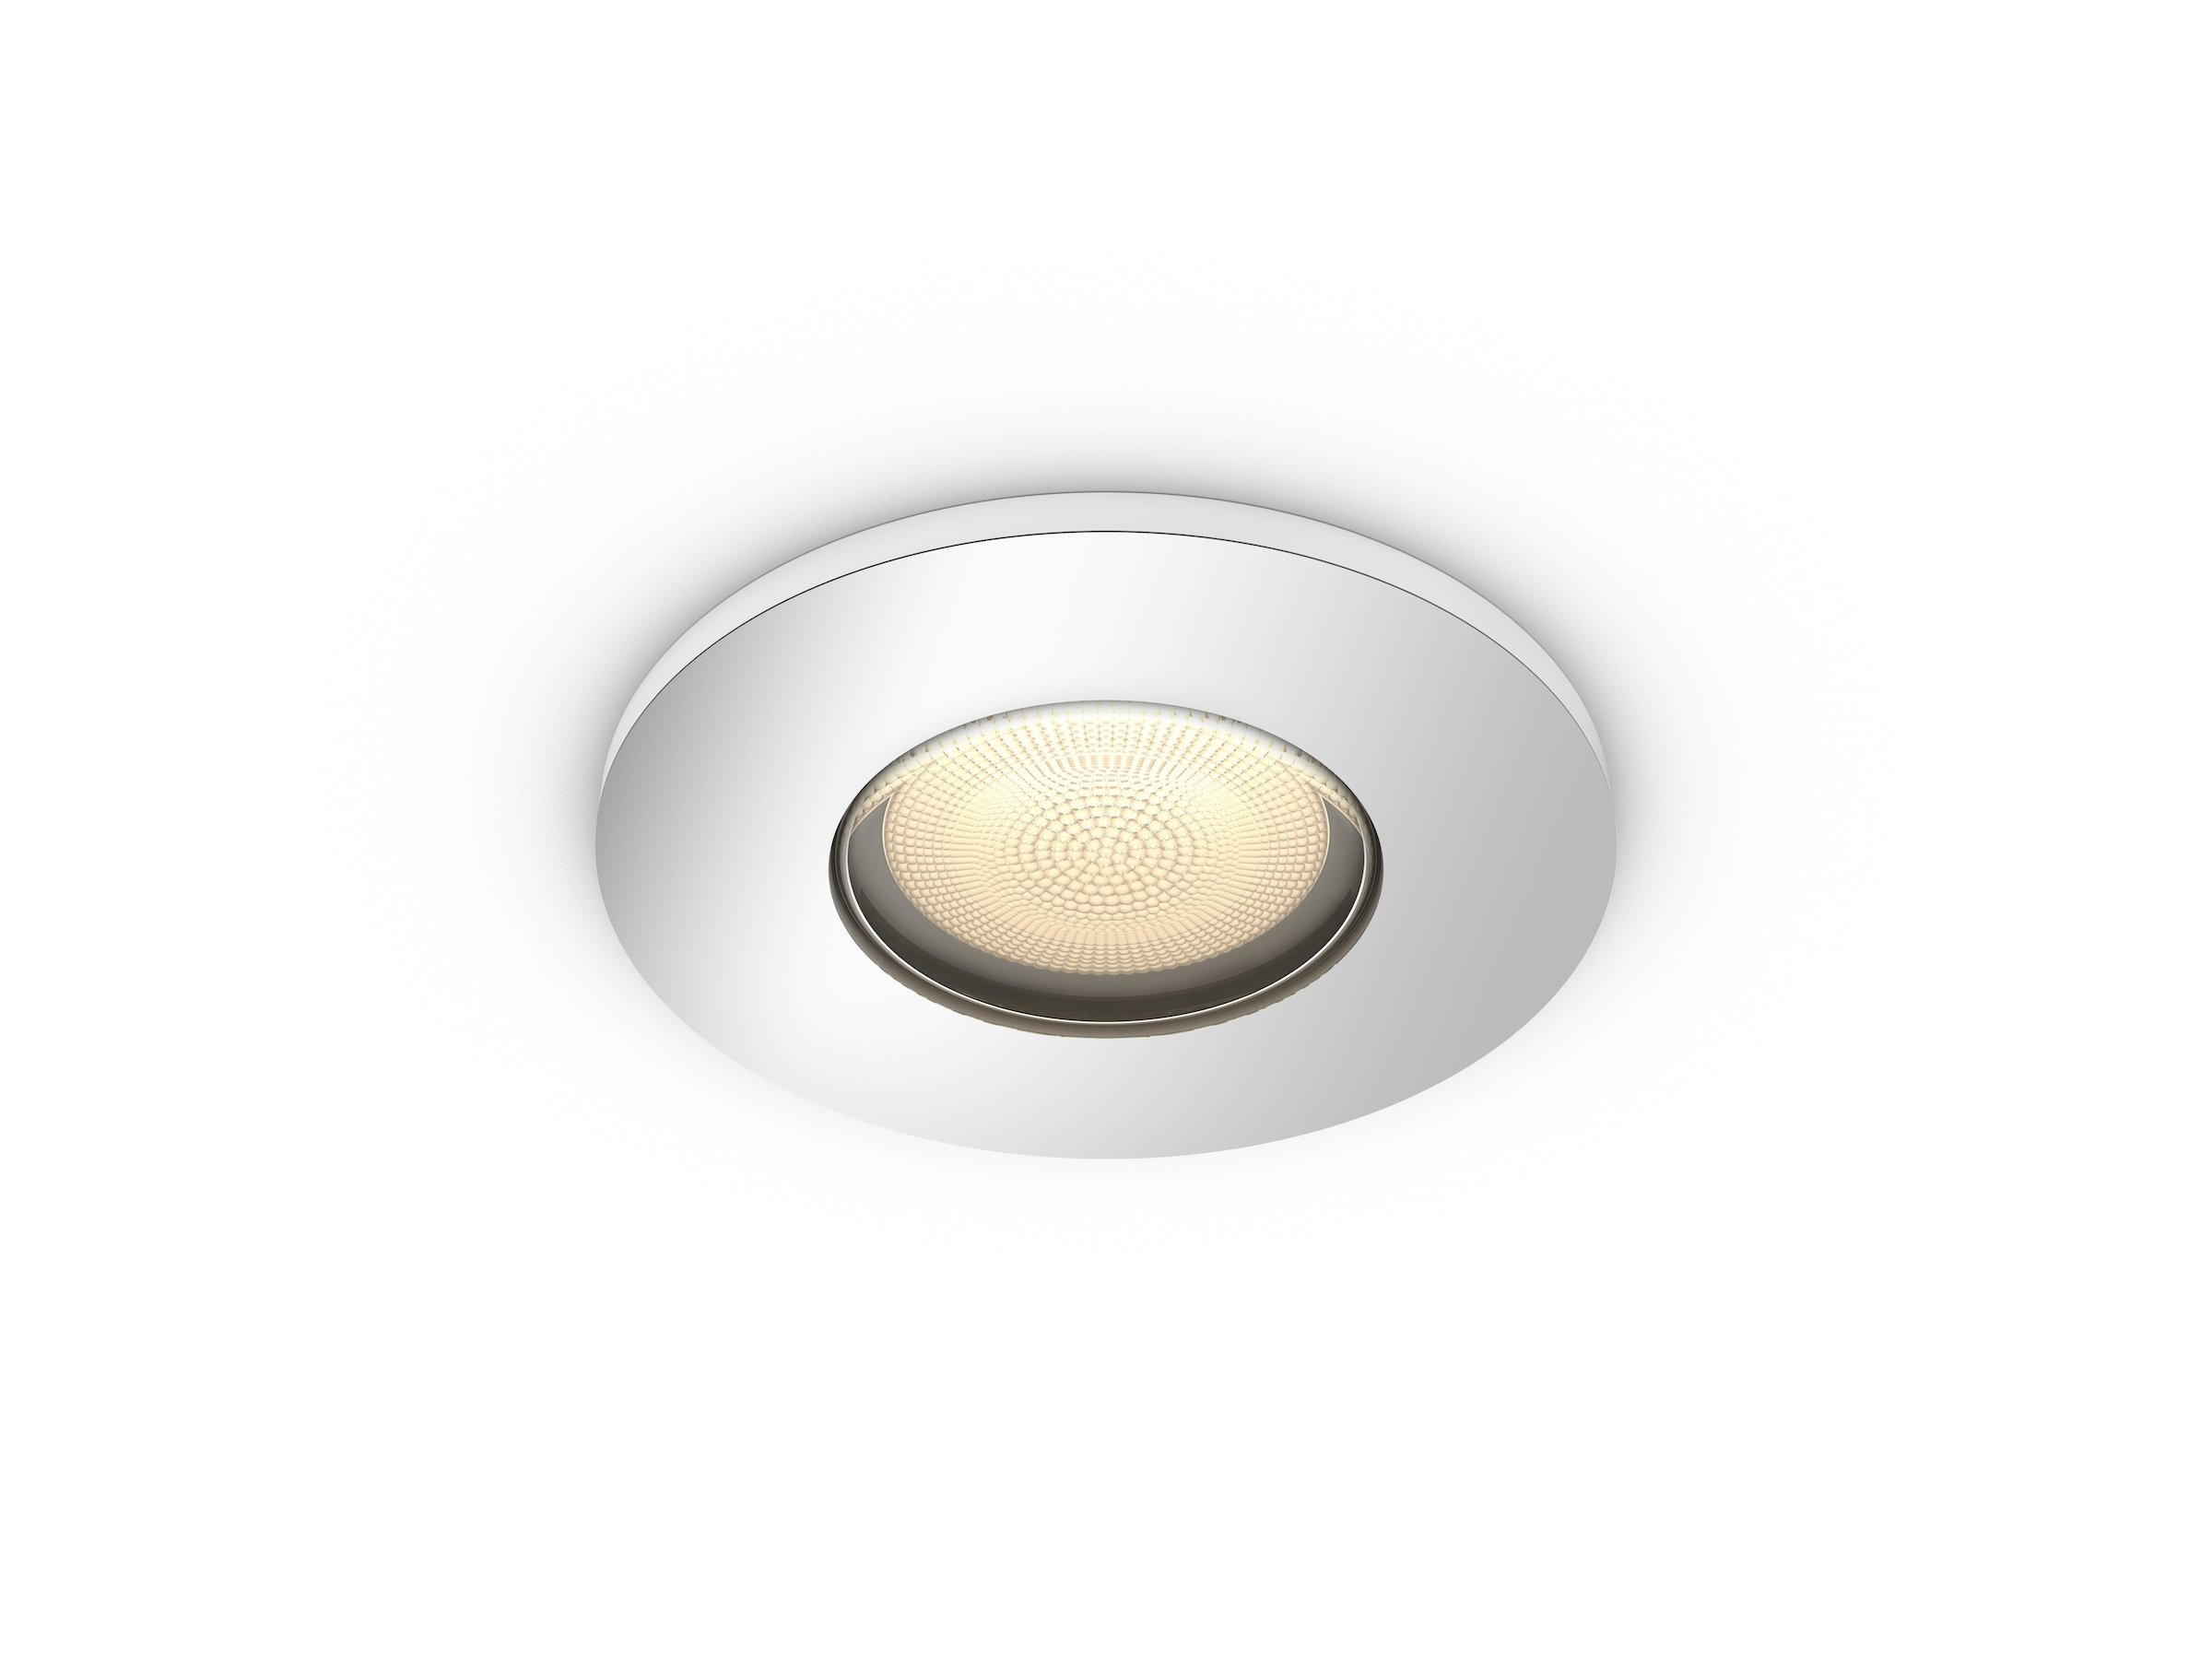 Philips Hue - Adore HUE recessed chrome 1x5W - White Ambiance Bluetooth